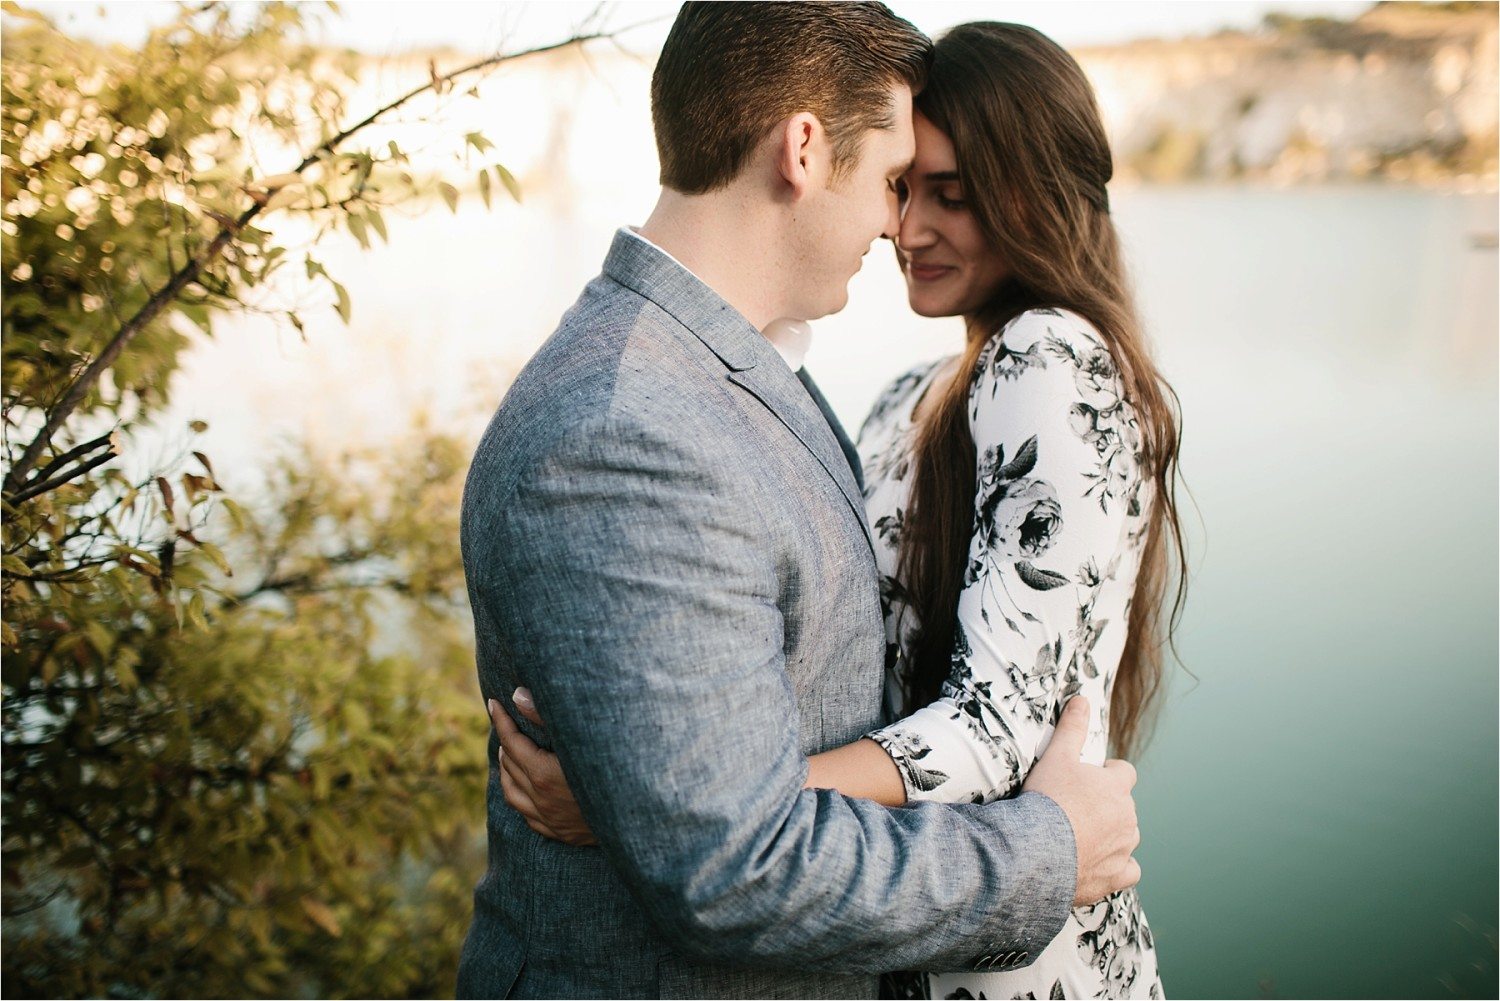 an-intimate-sunrise-session-by-north-texas-wedding-photographer-rachel-meagan-photography-_-28